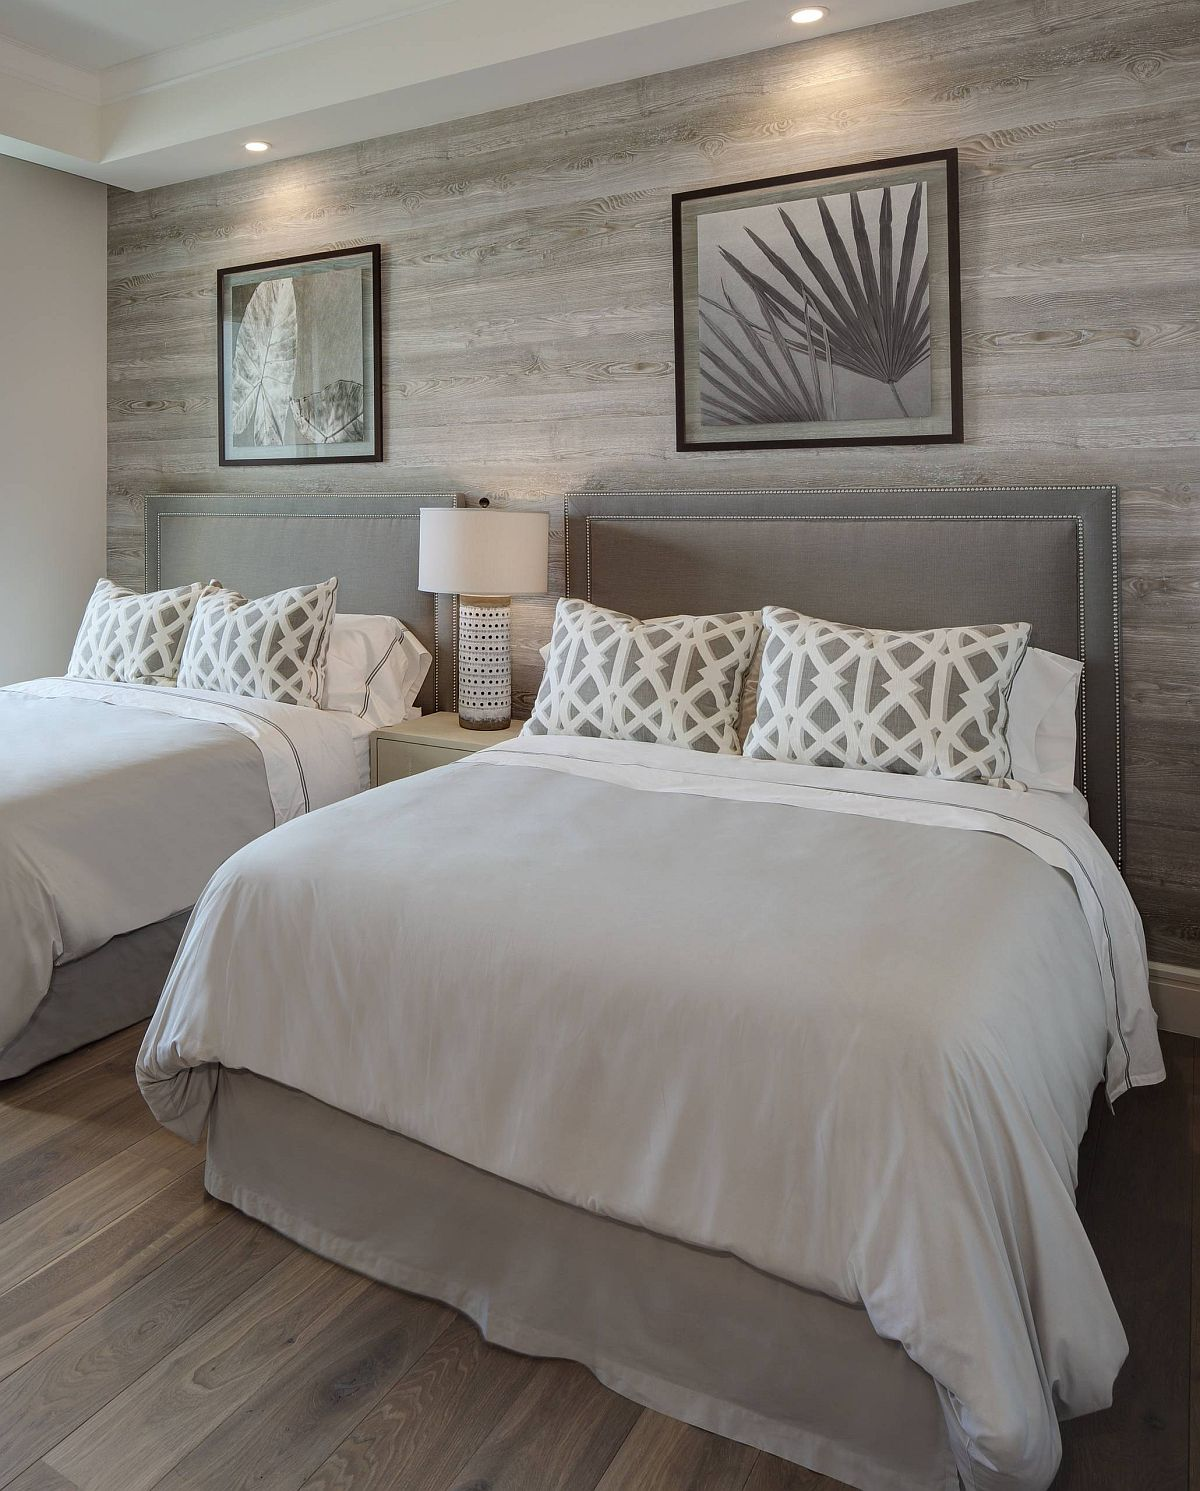 Custom wooden accent wall also brings a shade of gray to the bedroom with light gray walls